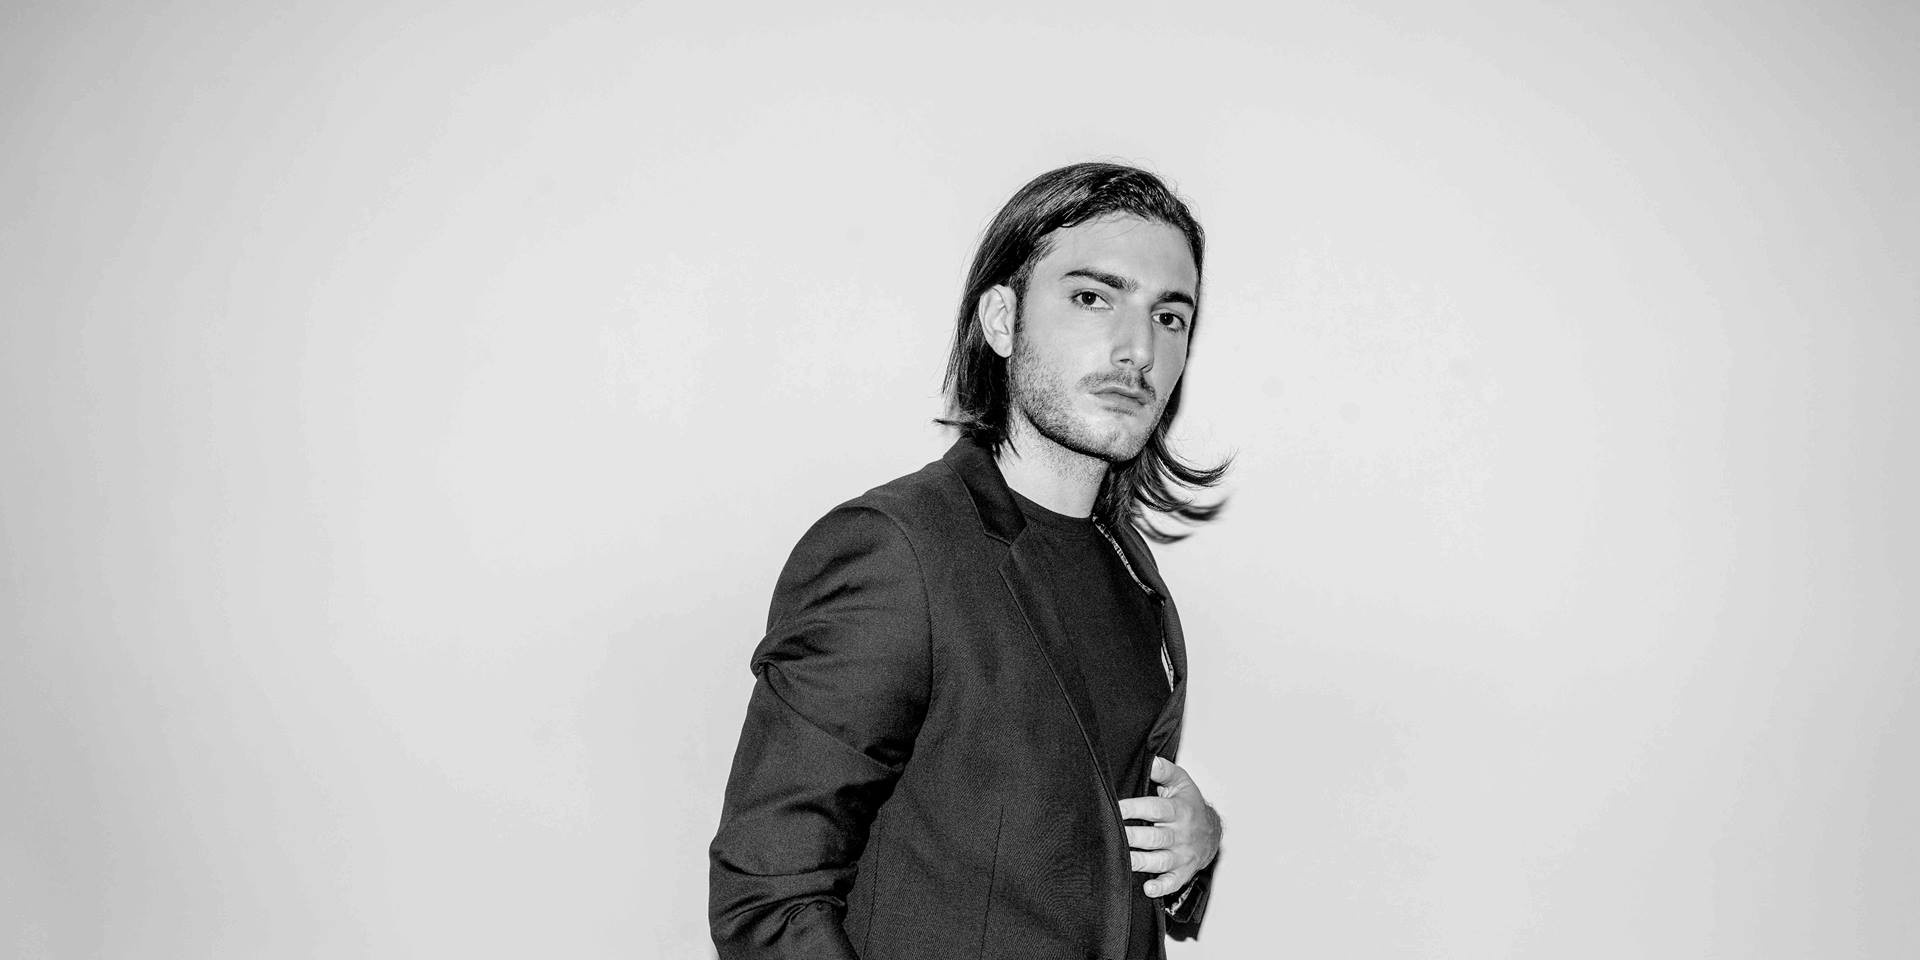 ALESSO is coming to Manila